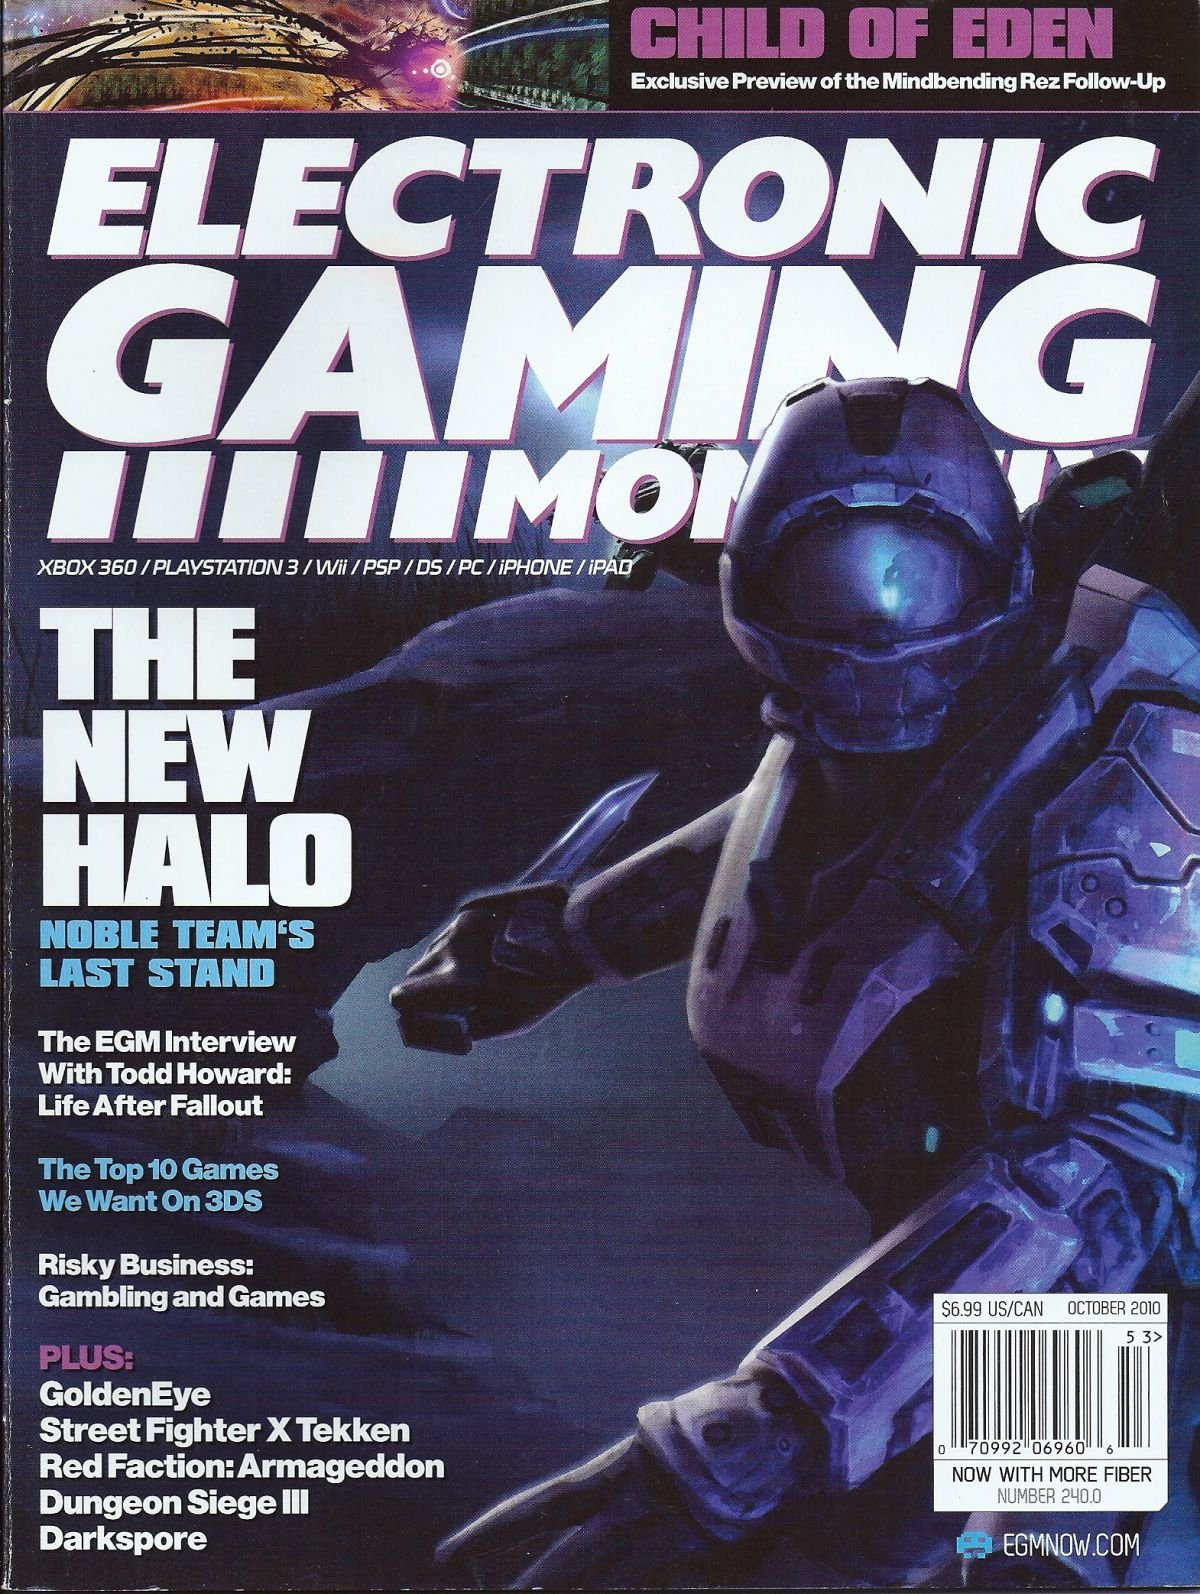 Electronic Gaming Monthly Issue 240 October 2010 Cover 2 of 2